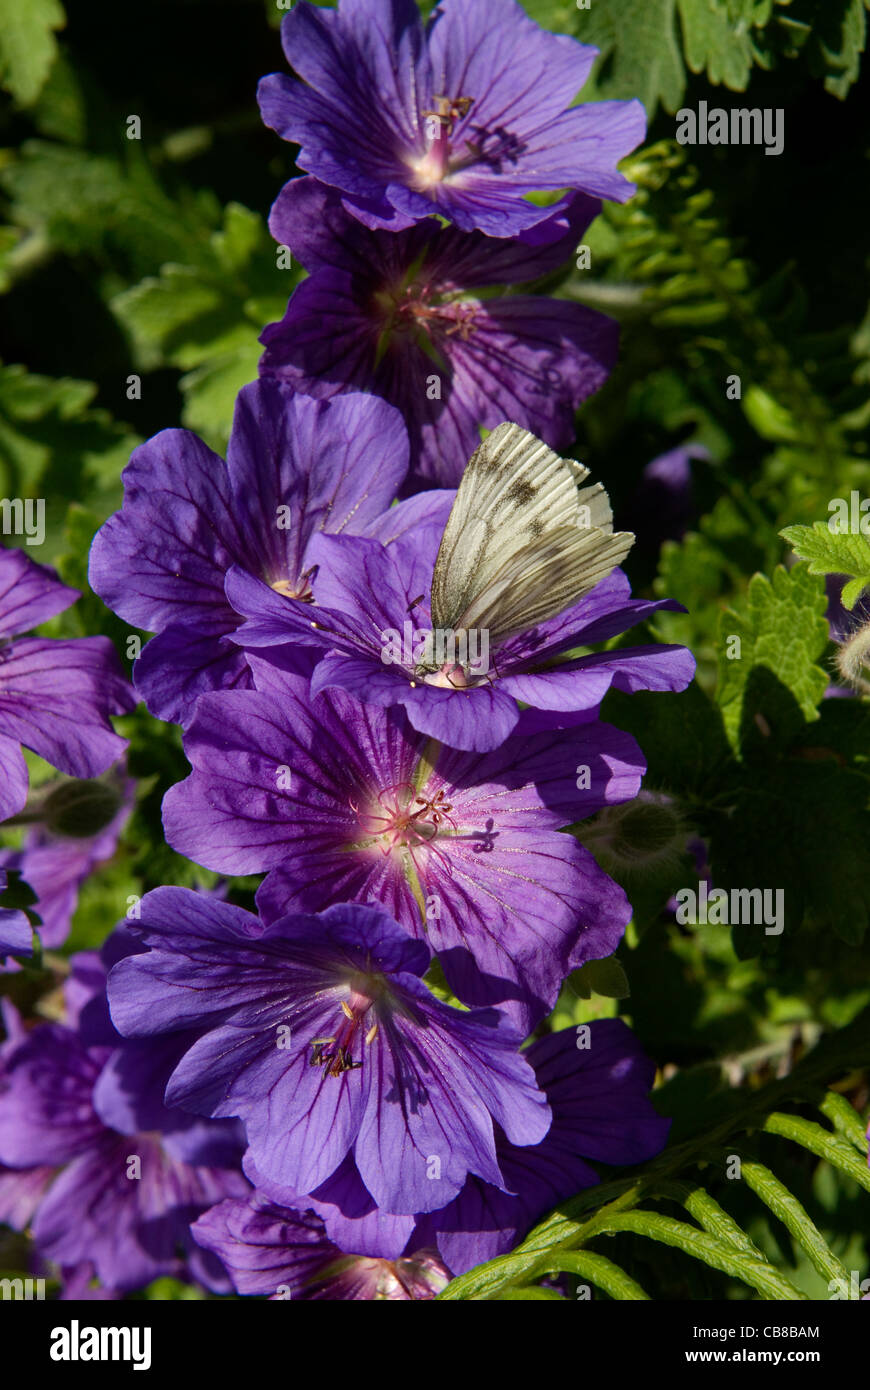 A green-veined white butterfly feeds on the striking dark blue flowers of the 'Johnson's Blue' geranium - Stock Image